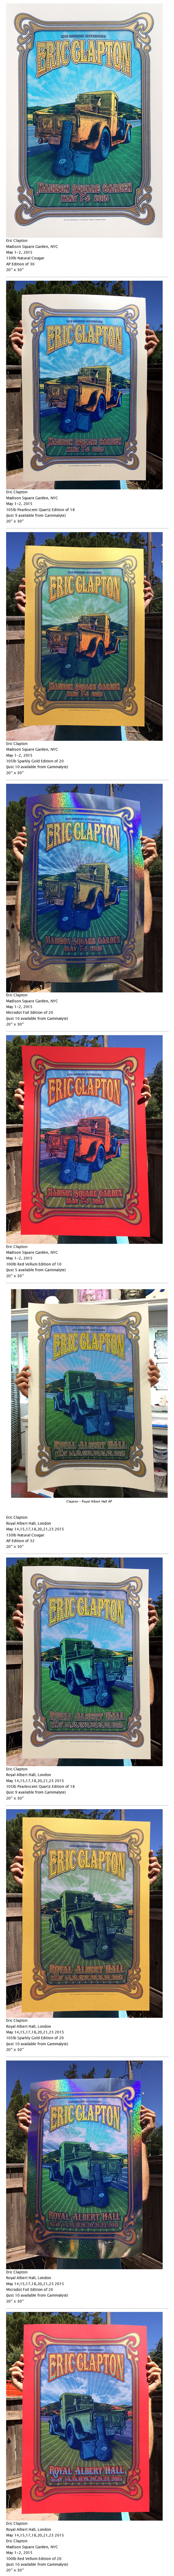 Eric_Clapton_70th_Anniversary_Concert_Posters_Dave_Hunter_-_2015-09-15_13.47-web